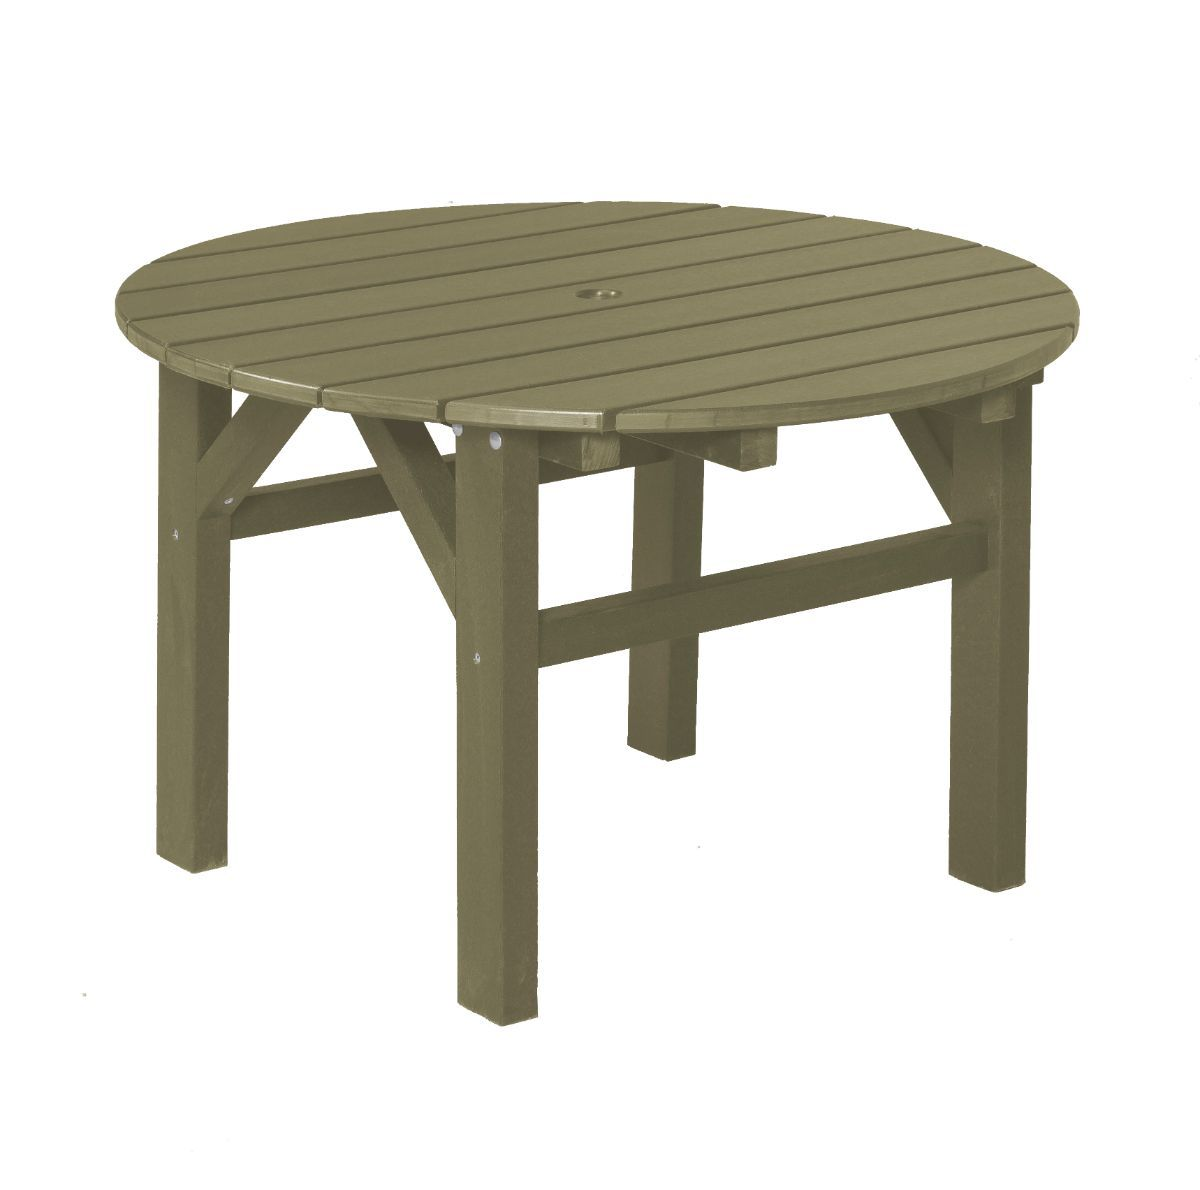 Olive Odessa Outdoor Coffee Table